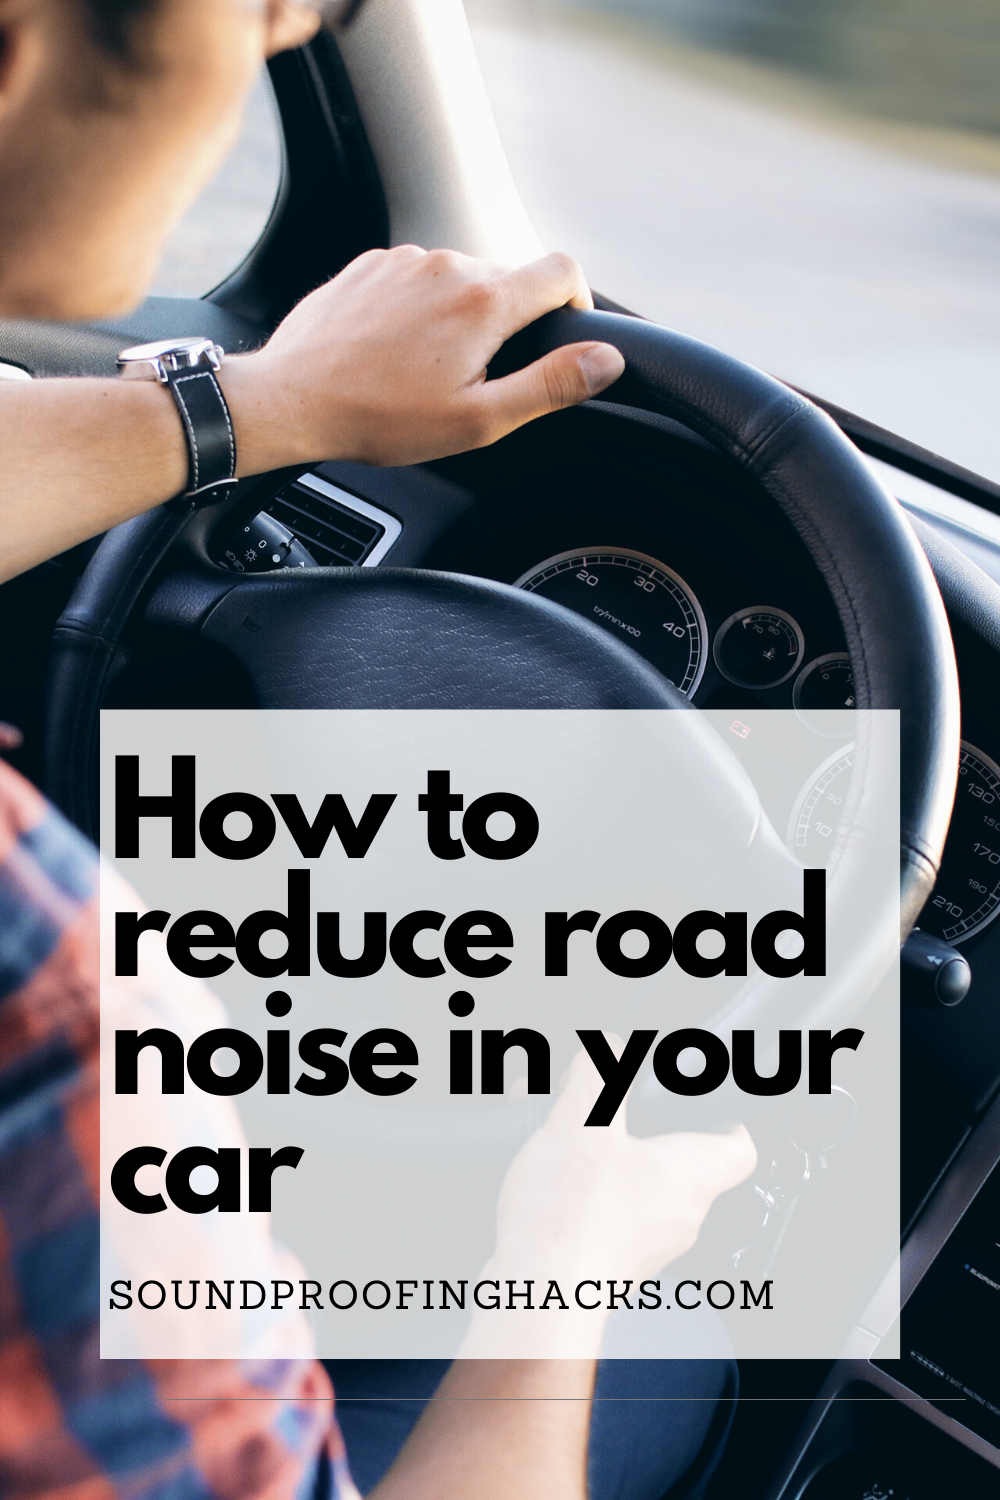 how to reduce noise in a car